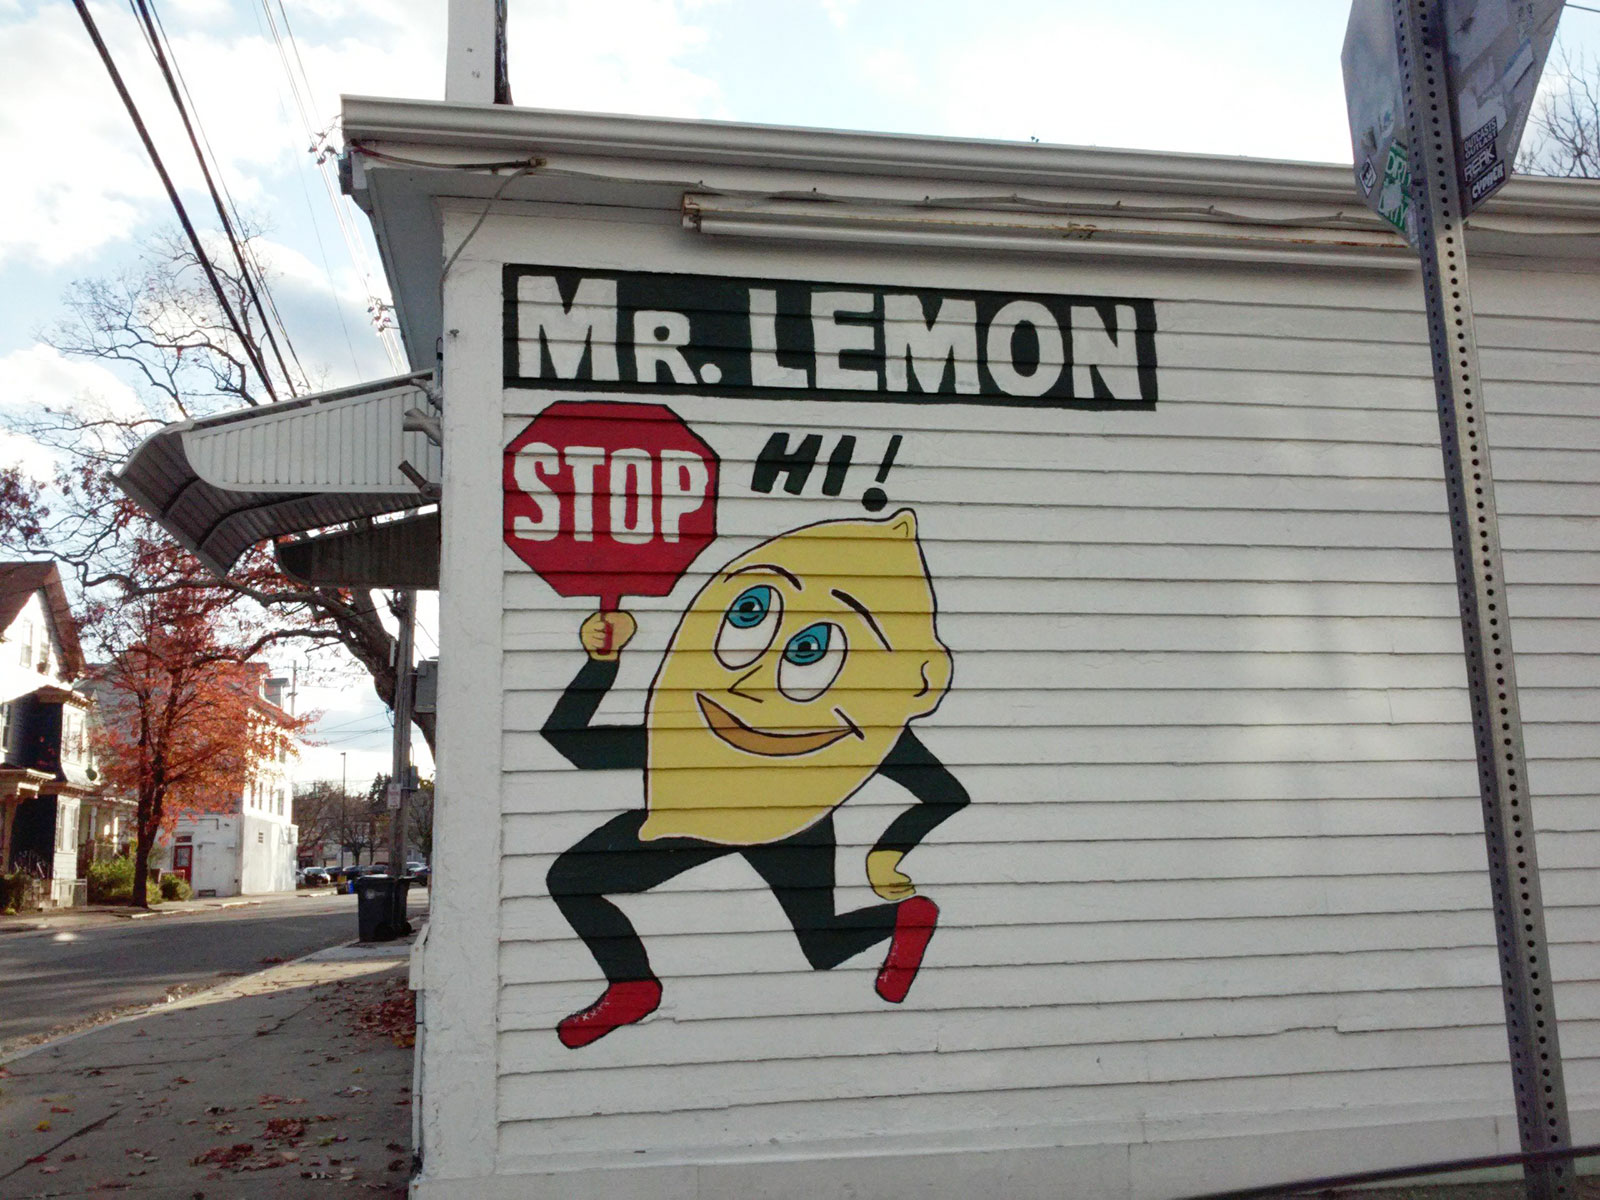 Mr. Lemon